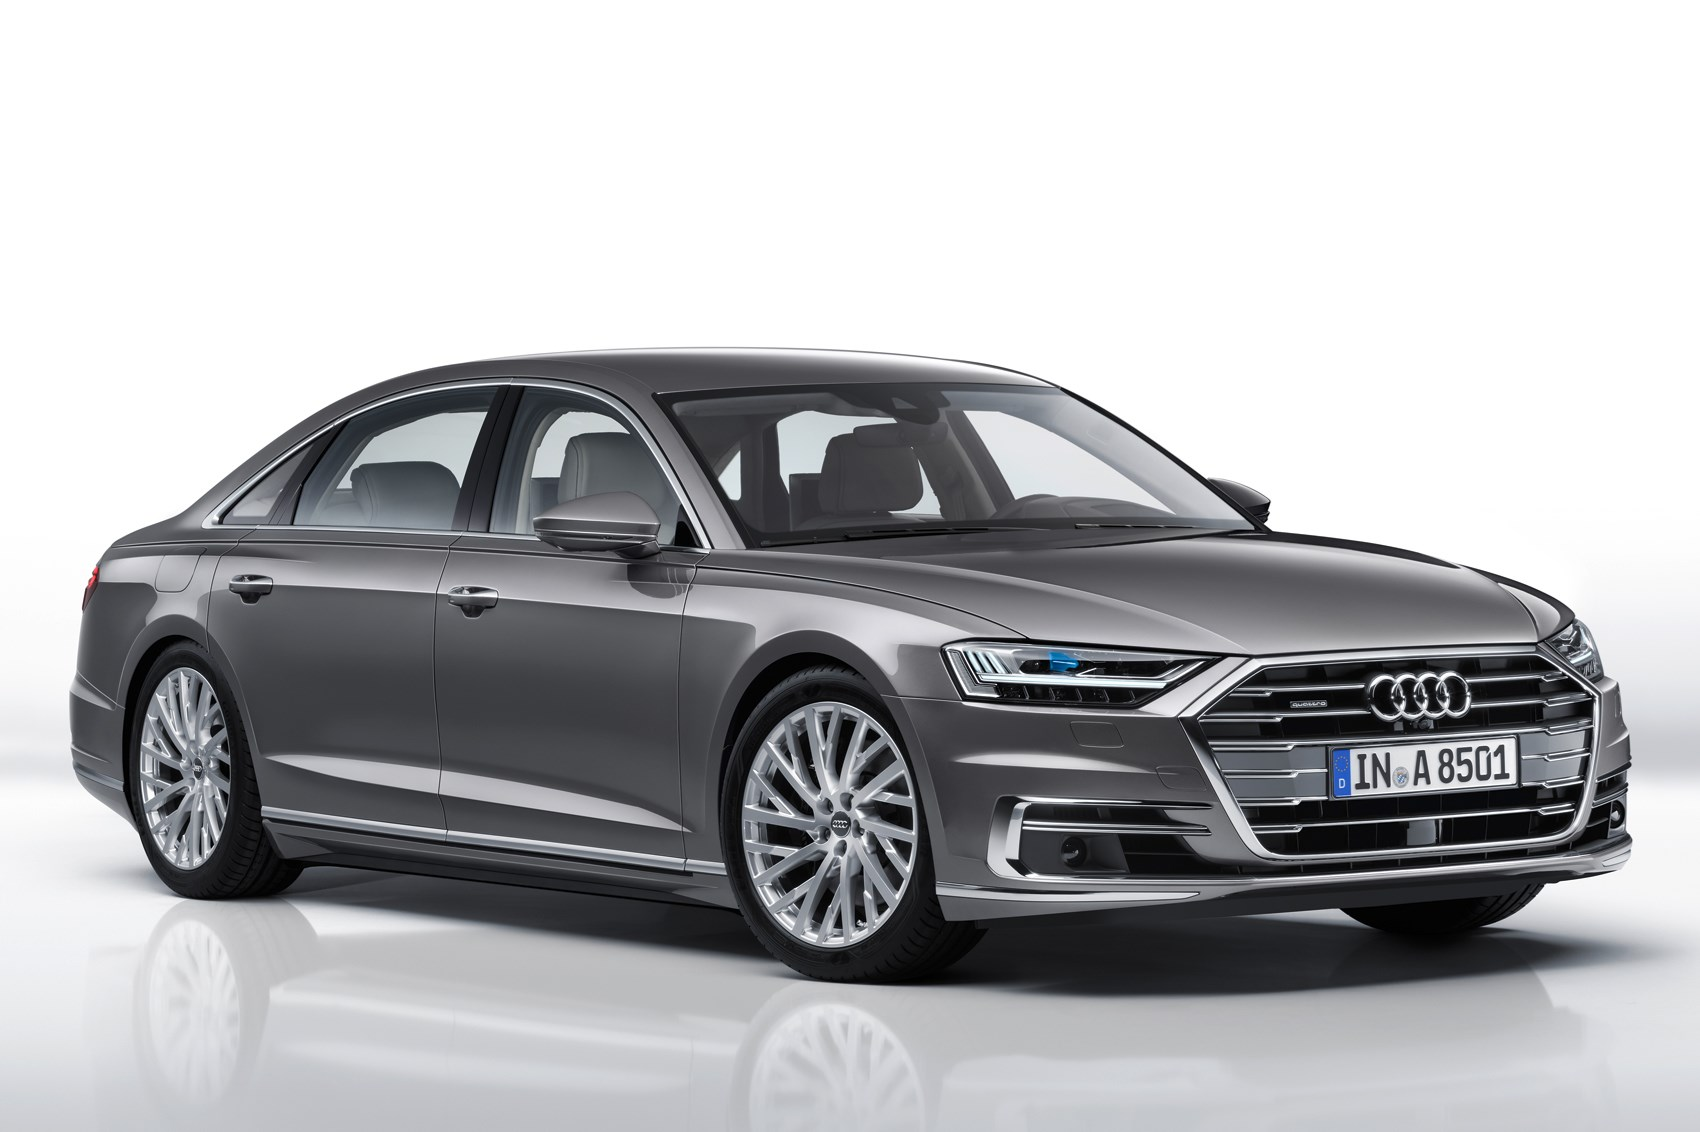 5 Luxury Cars to Keep an Eye On at IAA 2017 Audi A8 iaa 2017 5 Luxury Cars to Keep an Eye On at IAA 2017 5 Luxury Cars to Keep an Eye On at IAA 2017 Audi A8